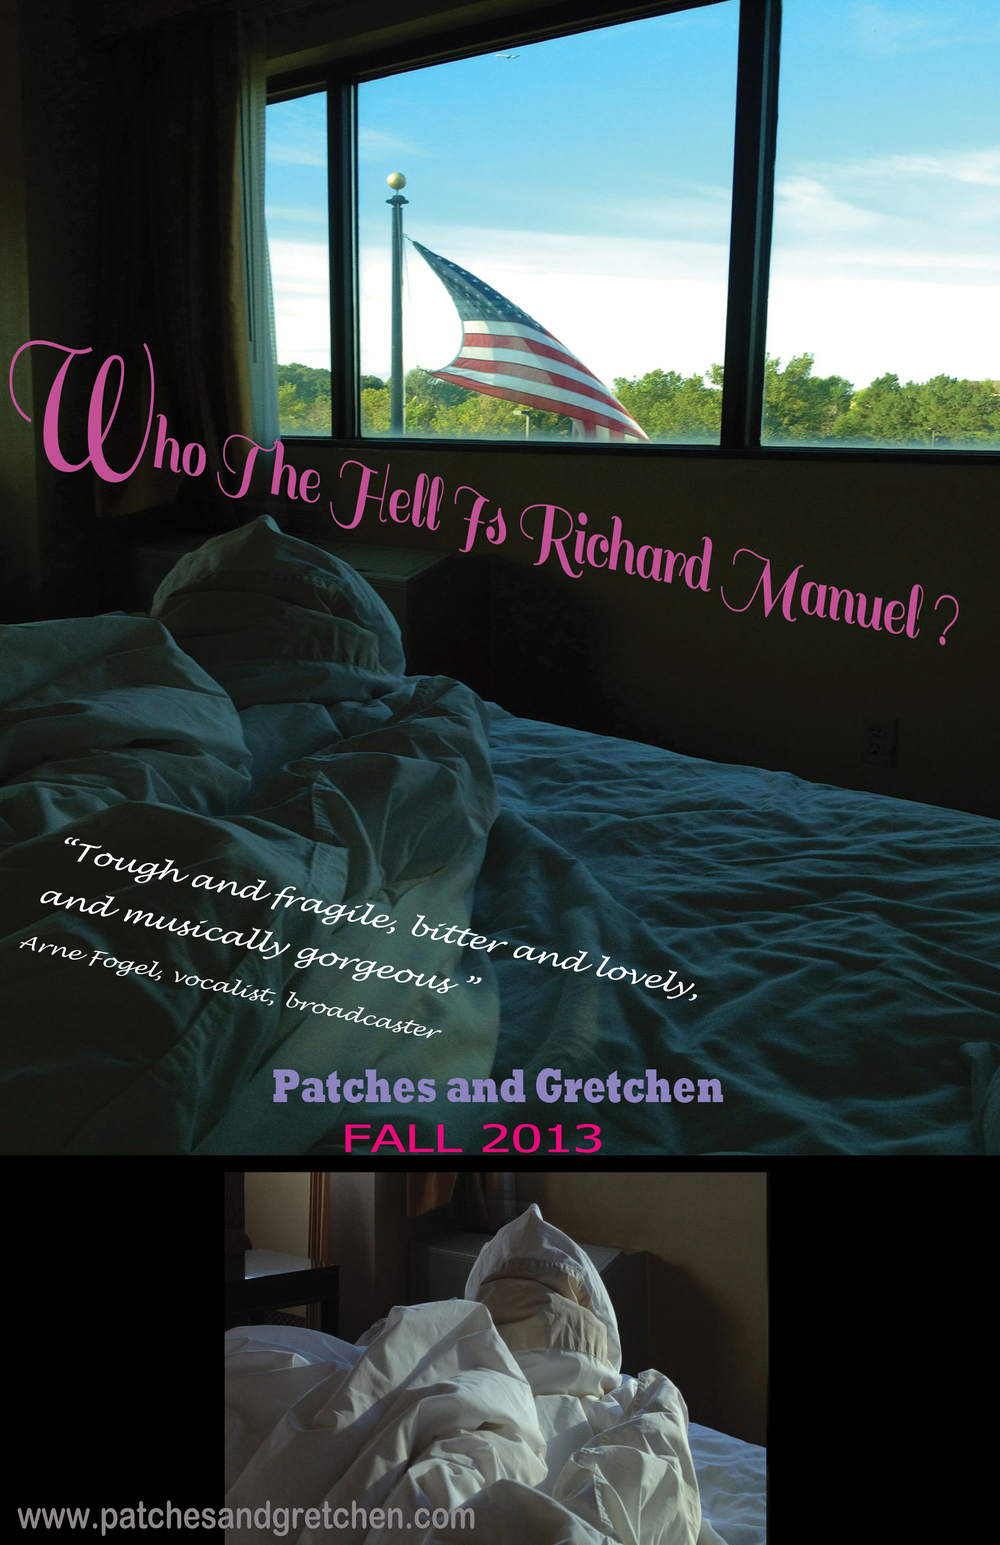 Who The Hell Is Richard Manuel? Patches and Gretchen FALL 2013 Poster and Photo by Gretchen Seichrist